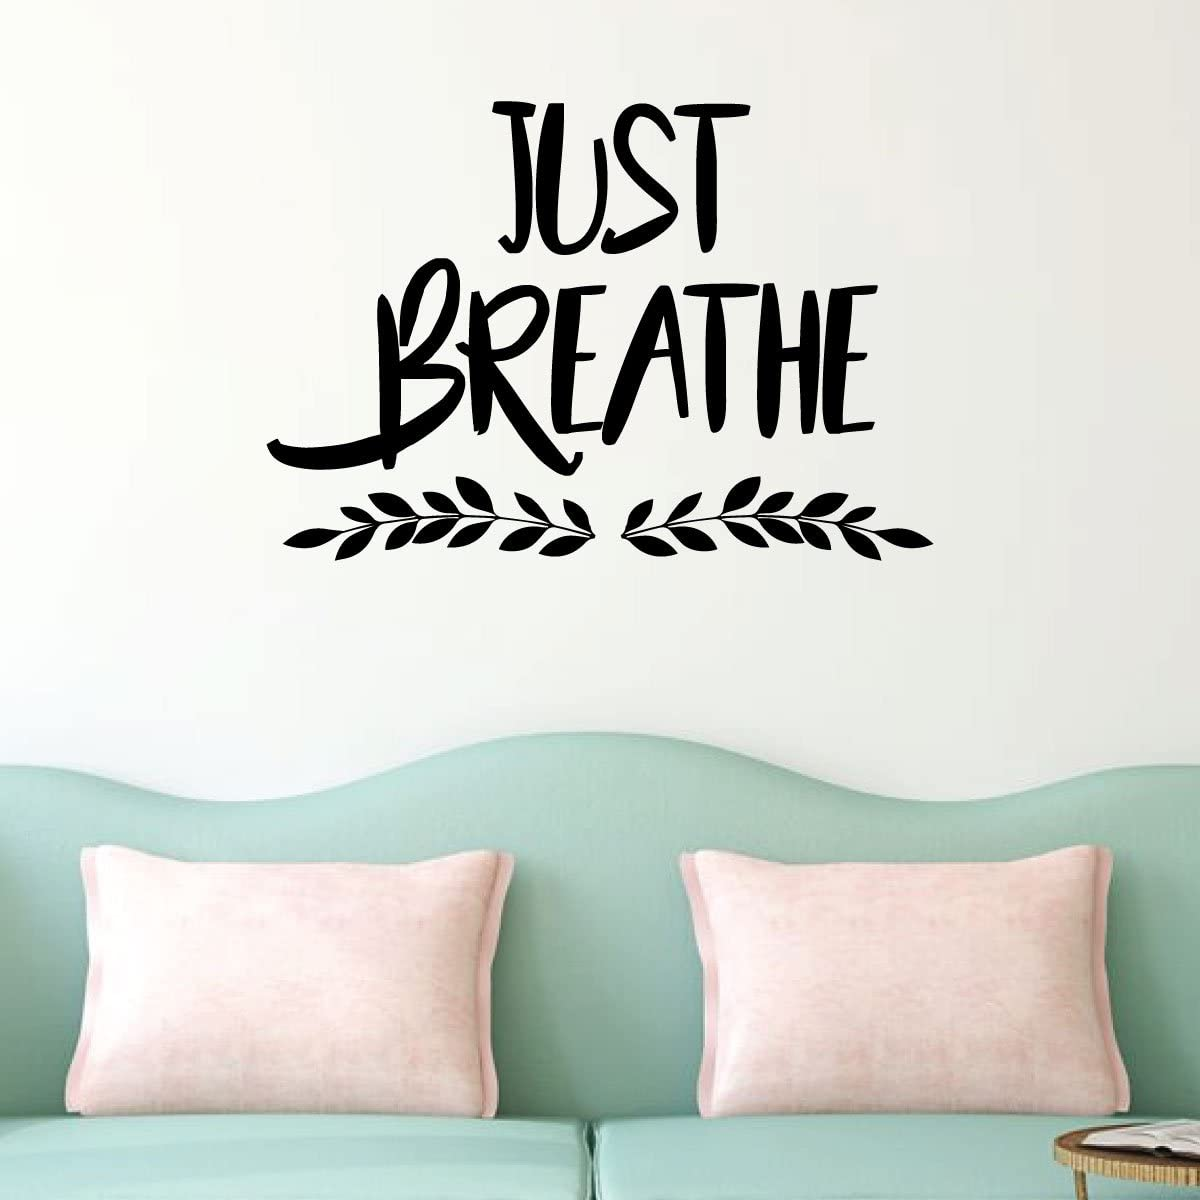 Just Breathe Inspirational Vinyl Wall Decal | Decor for Family Room, Bedroom, Classroom, or Home Gym | Removable Sticker Decal | Custom Sizes and Colors Fit Any Themed Living Space | Black, Red, White, Gray